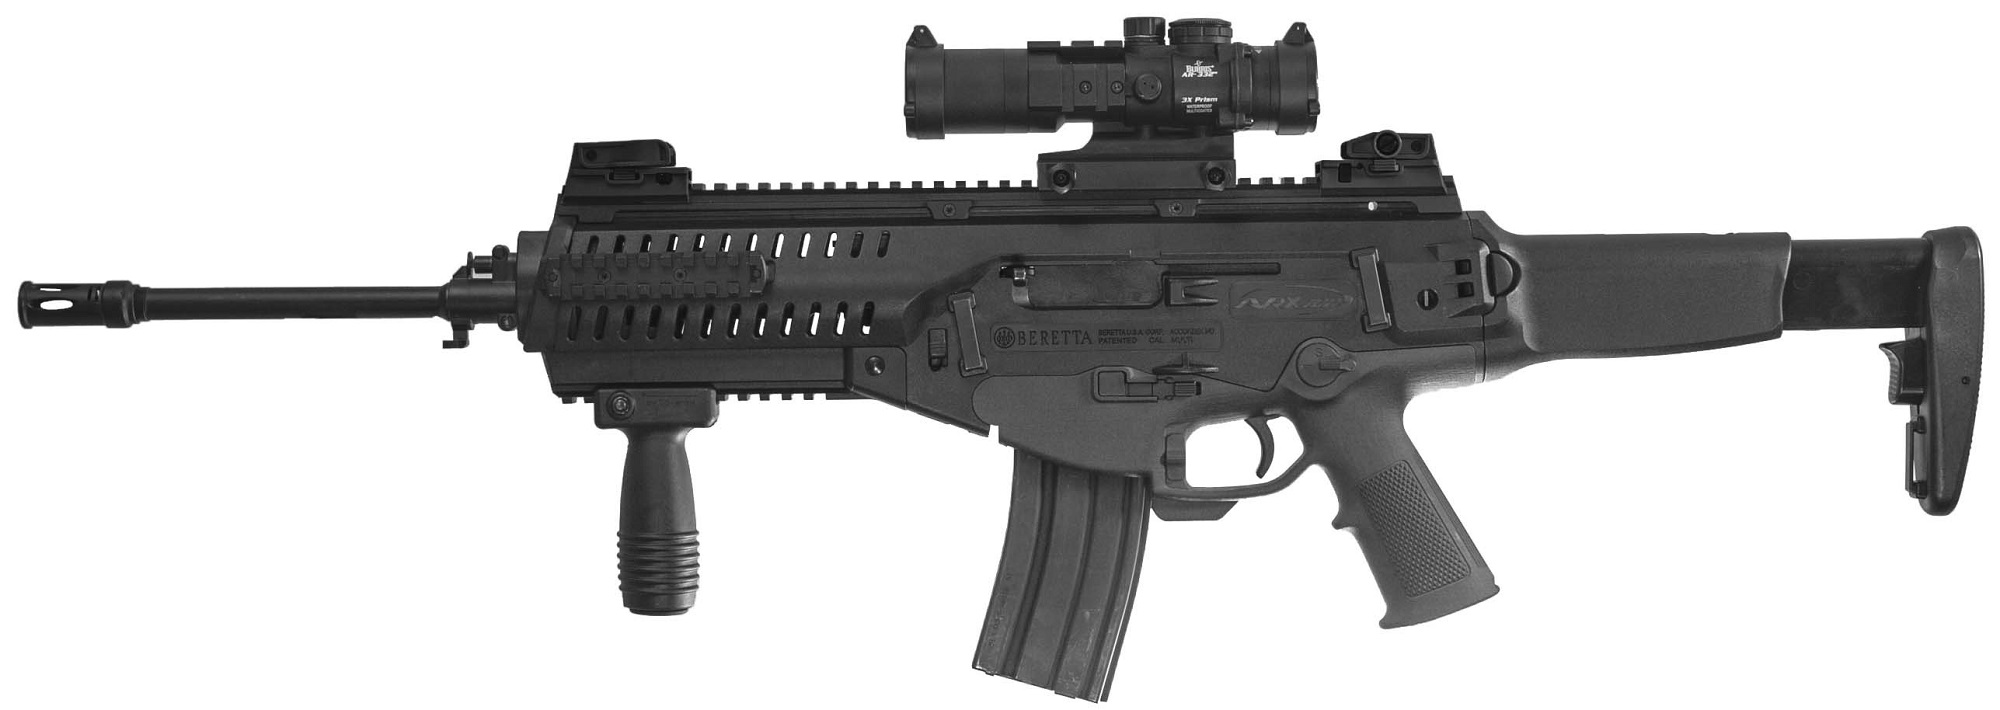 The ARX-100 retains the modular features of the ARX-160 assault rifle, including the quick-change barrel system